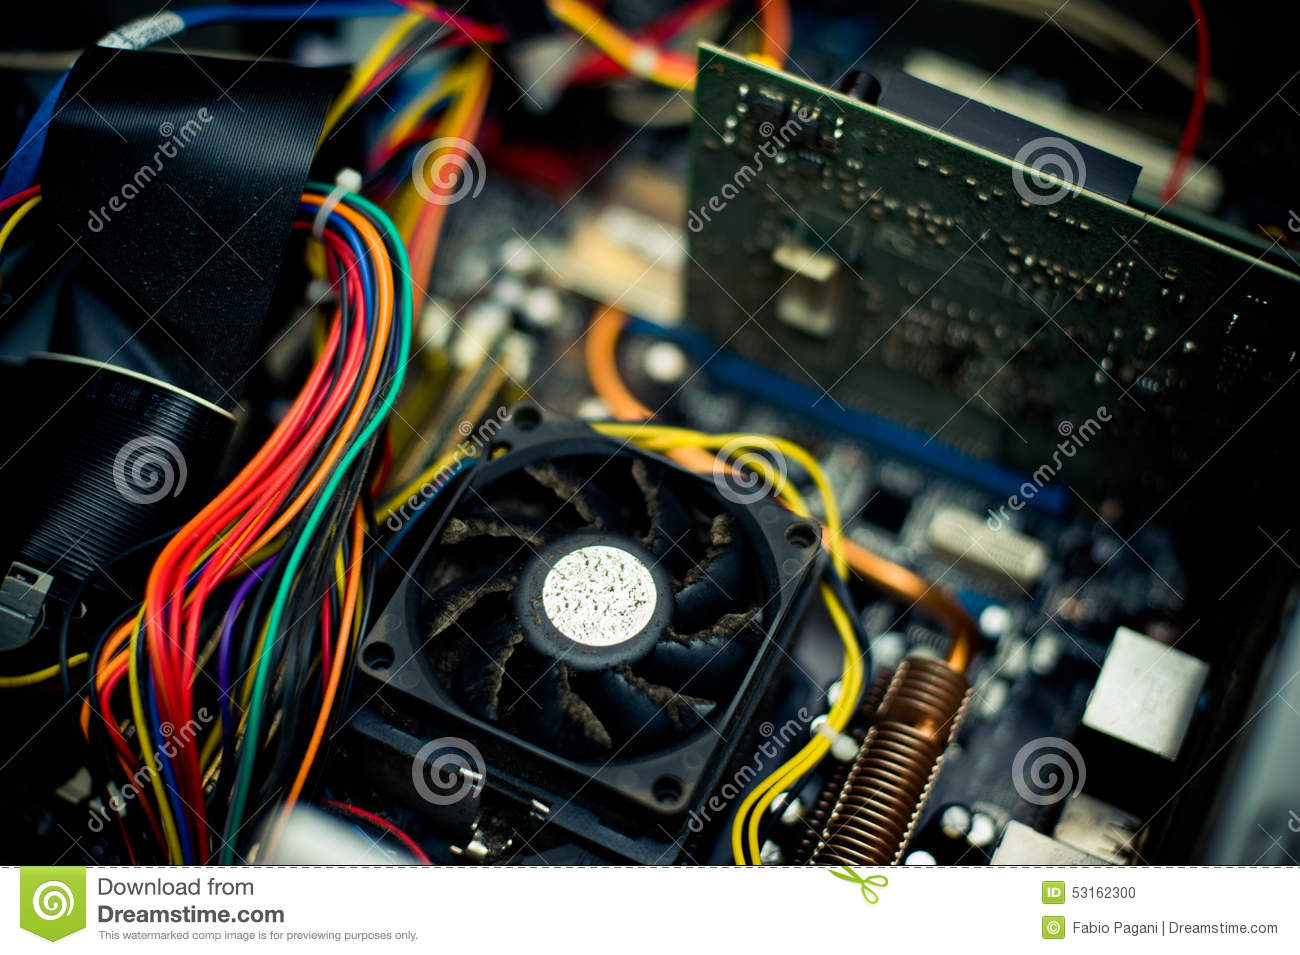 Old Dusty Pc Motherboard Fan Vintage Color Effect Stock Photo Capacitorcircuit Download Image Of Capacitor